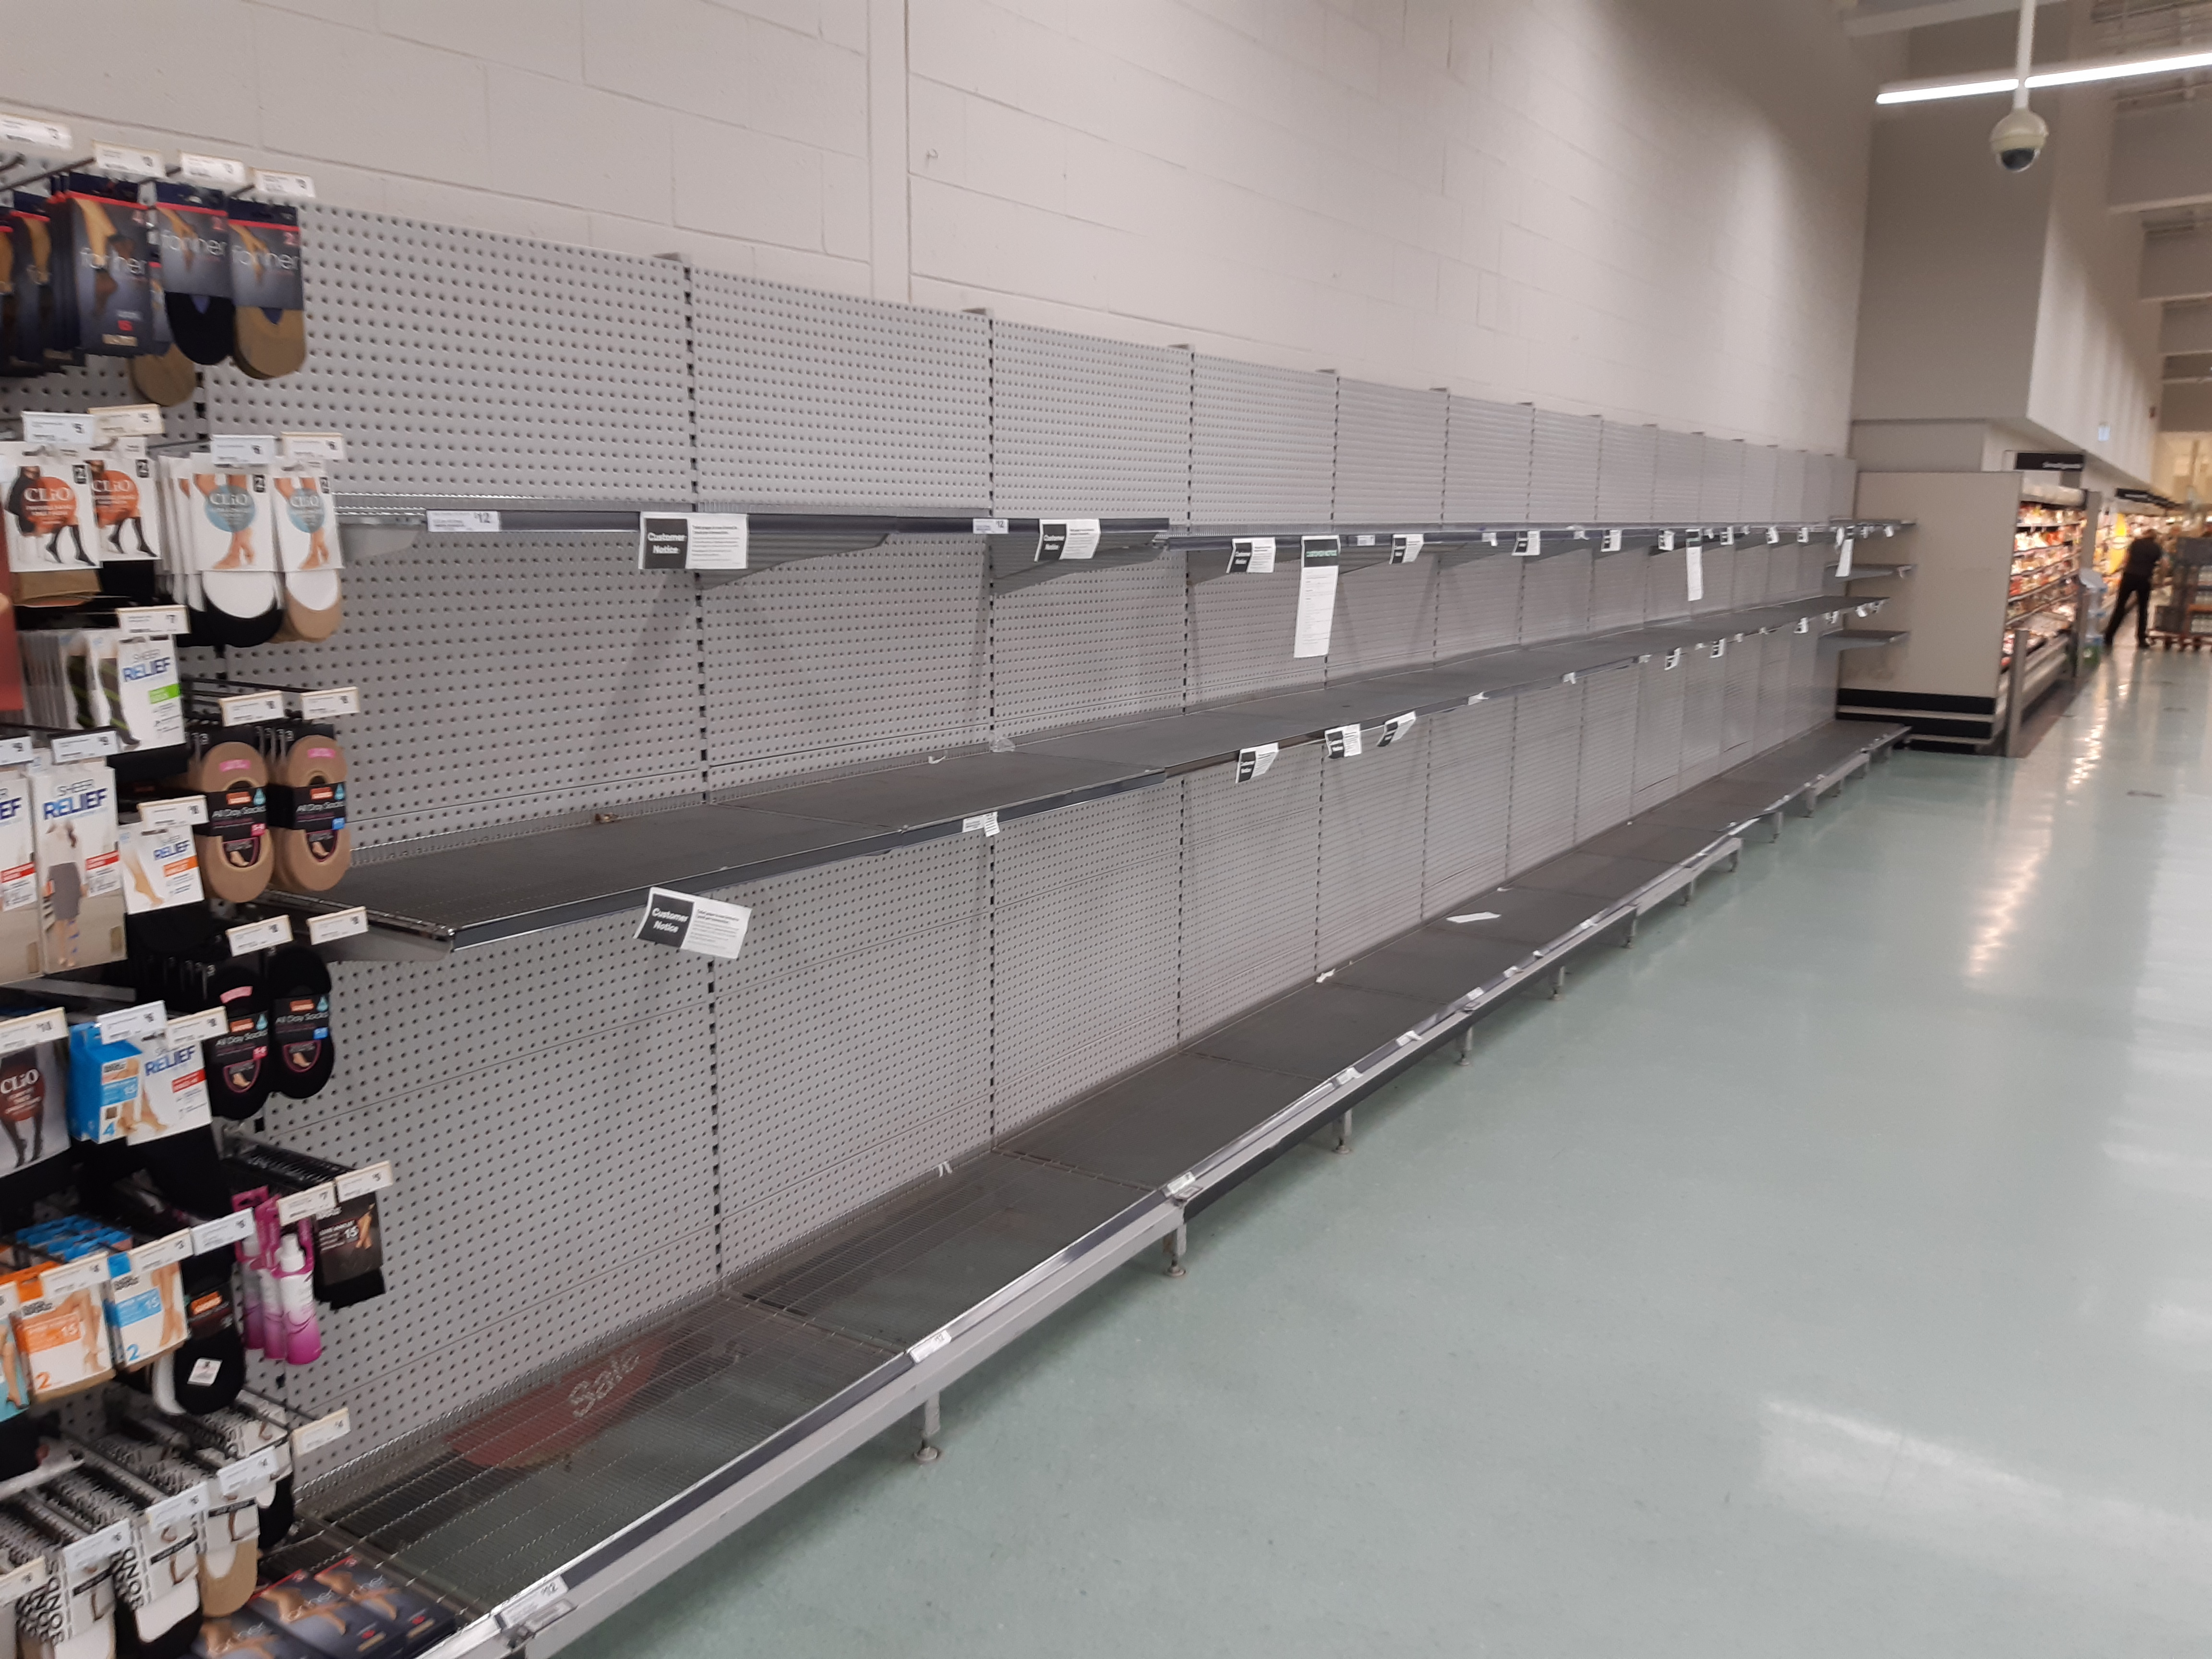 File:Rockingham City Shopping Centre empty shelves caused by the effects of the COVID-19 pandemic, March 2020.jpg